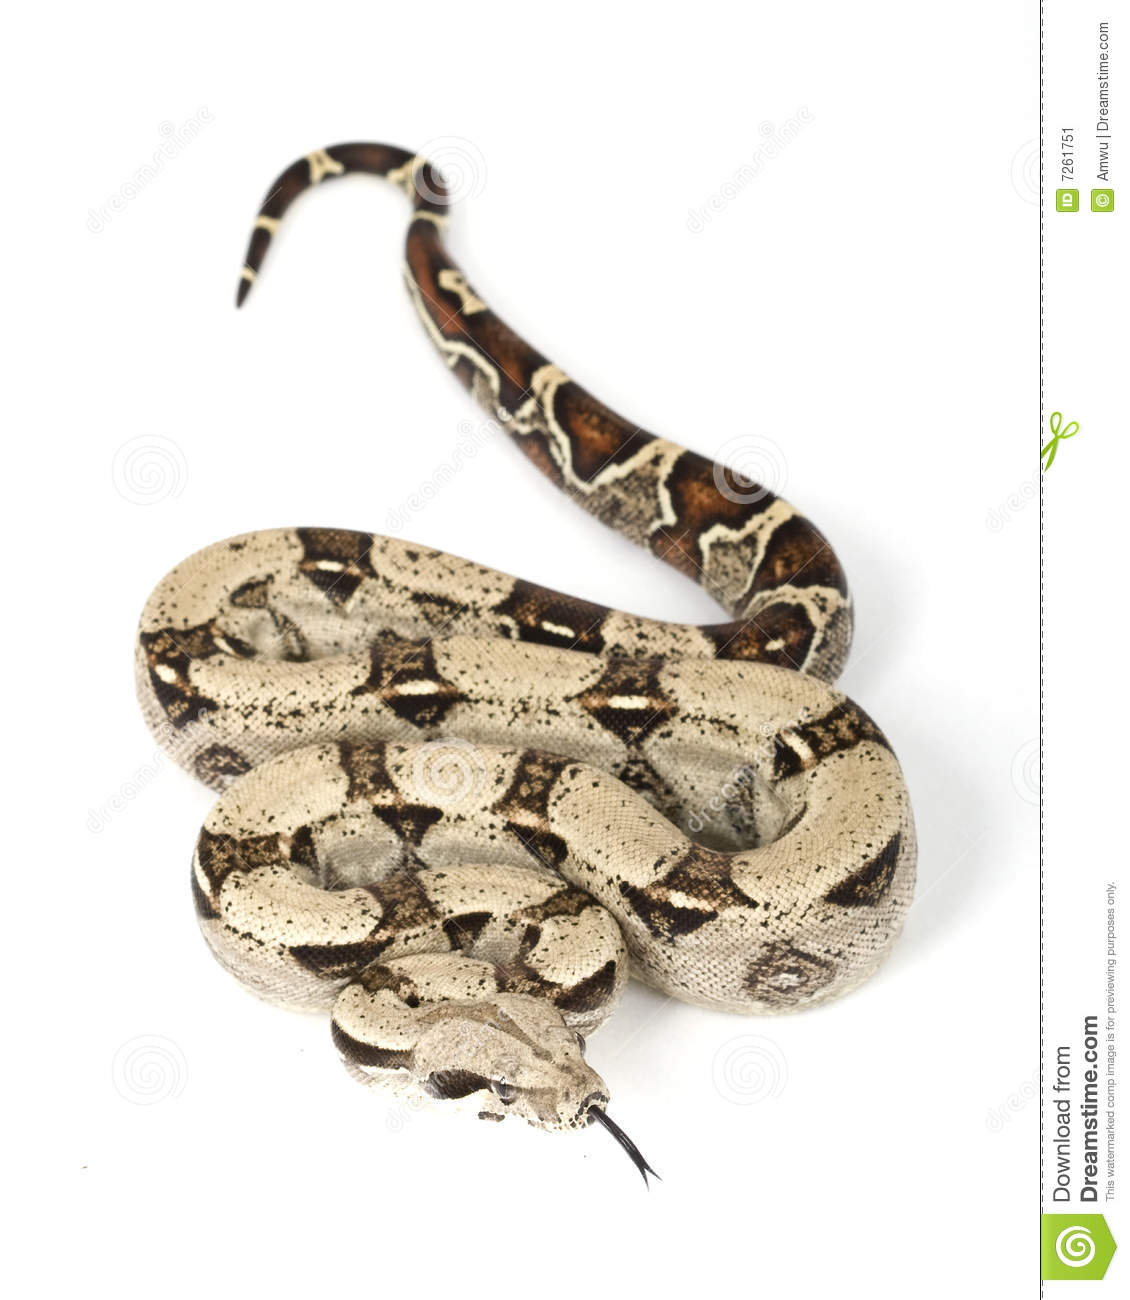 Red-tailed Boa (B. c. constrictor)